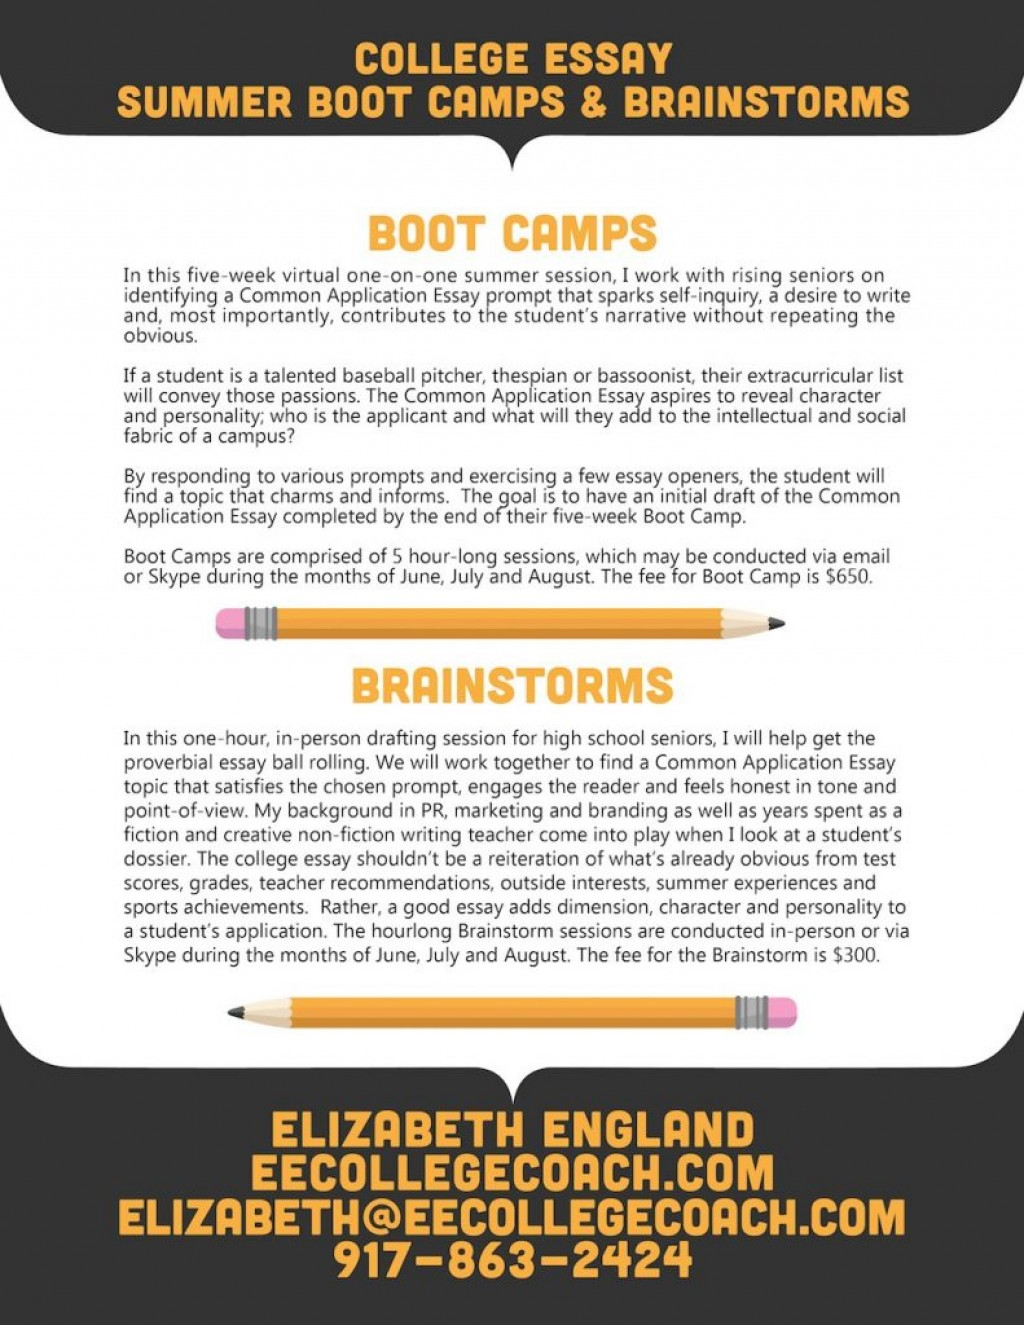 004 College Essay Summer Boot Camps Brainstorms 791x1024 Example Astounding Princeton Review Essays Examples Large